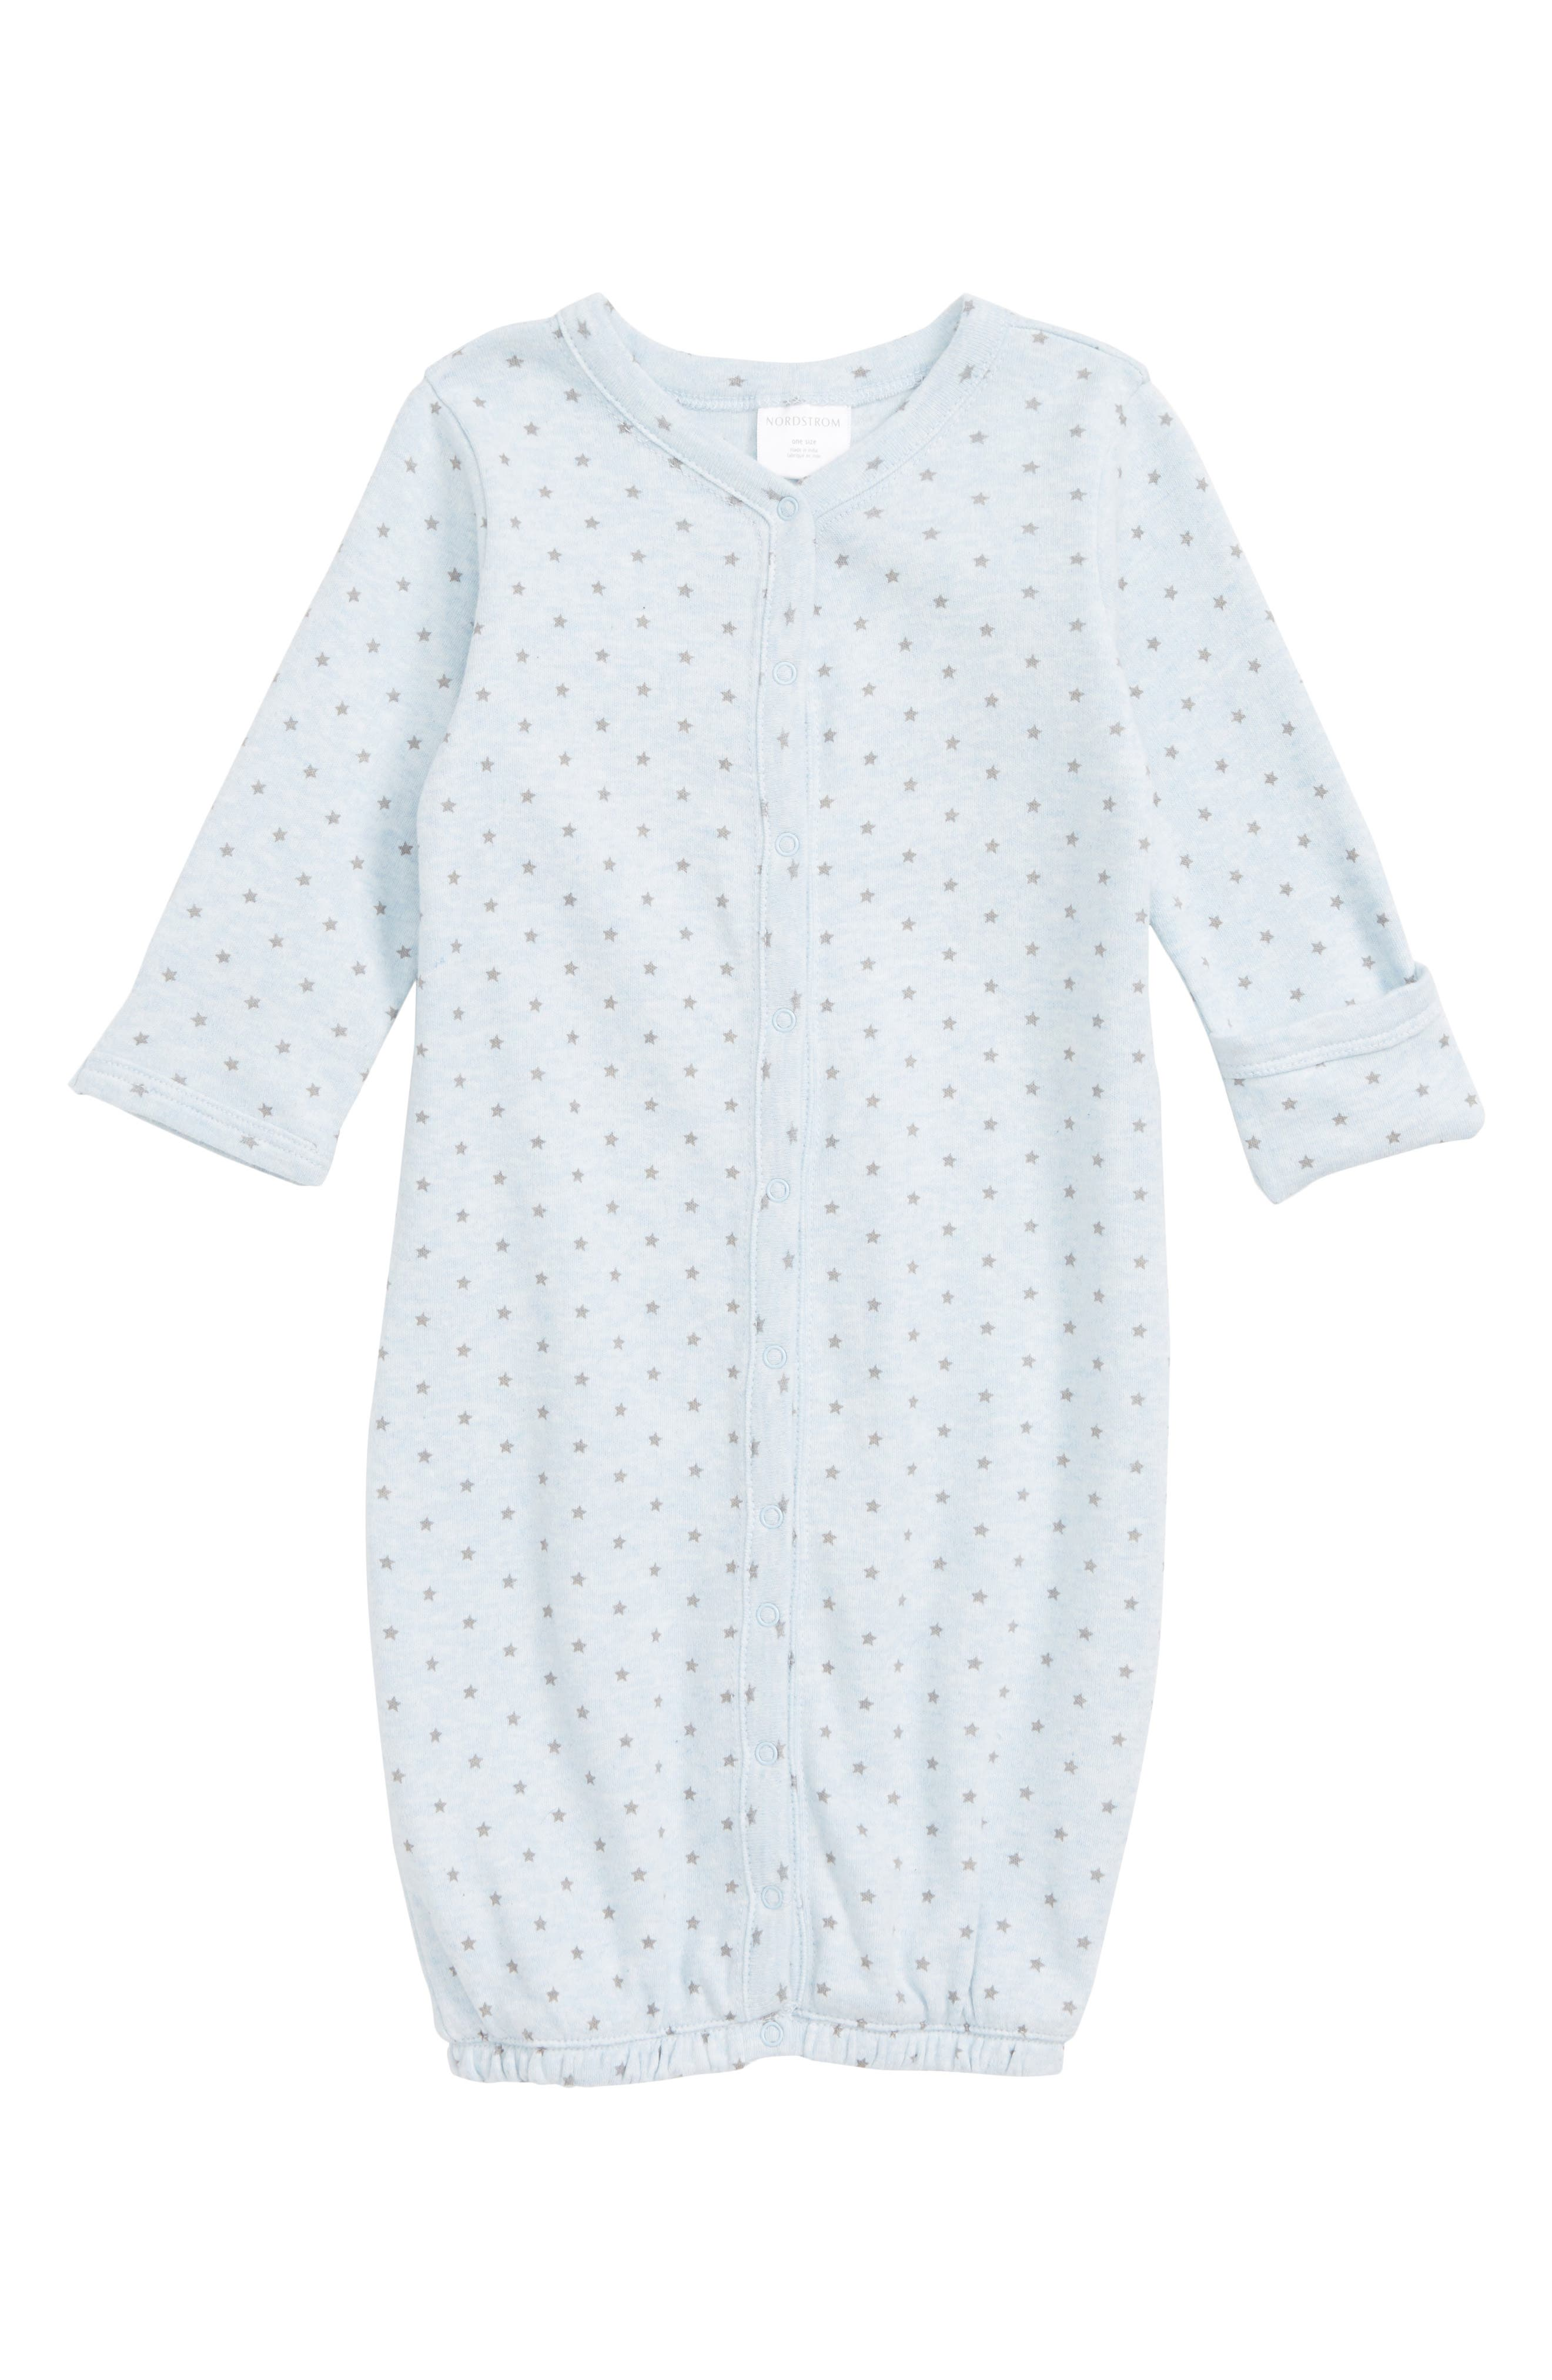 NORDSTROM BABY Convertible Gown, Main, color, BLUE PRECIOUS HEATHER STARS